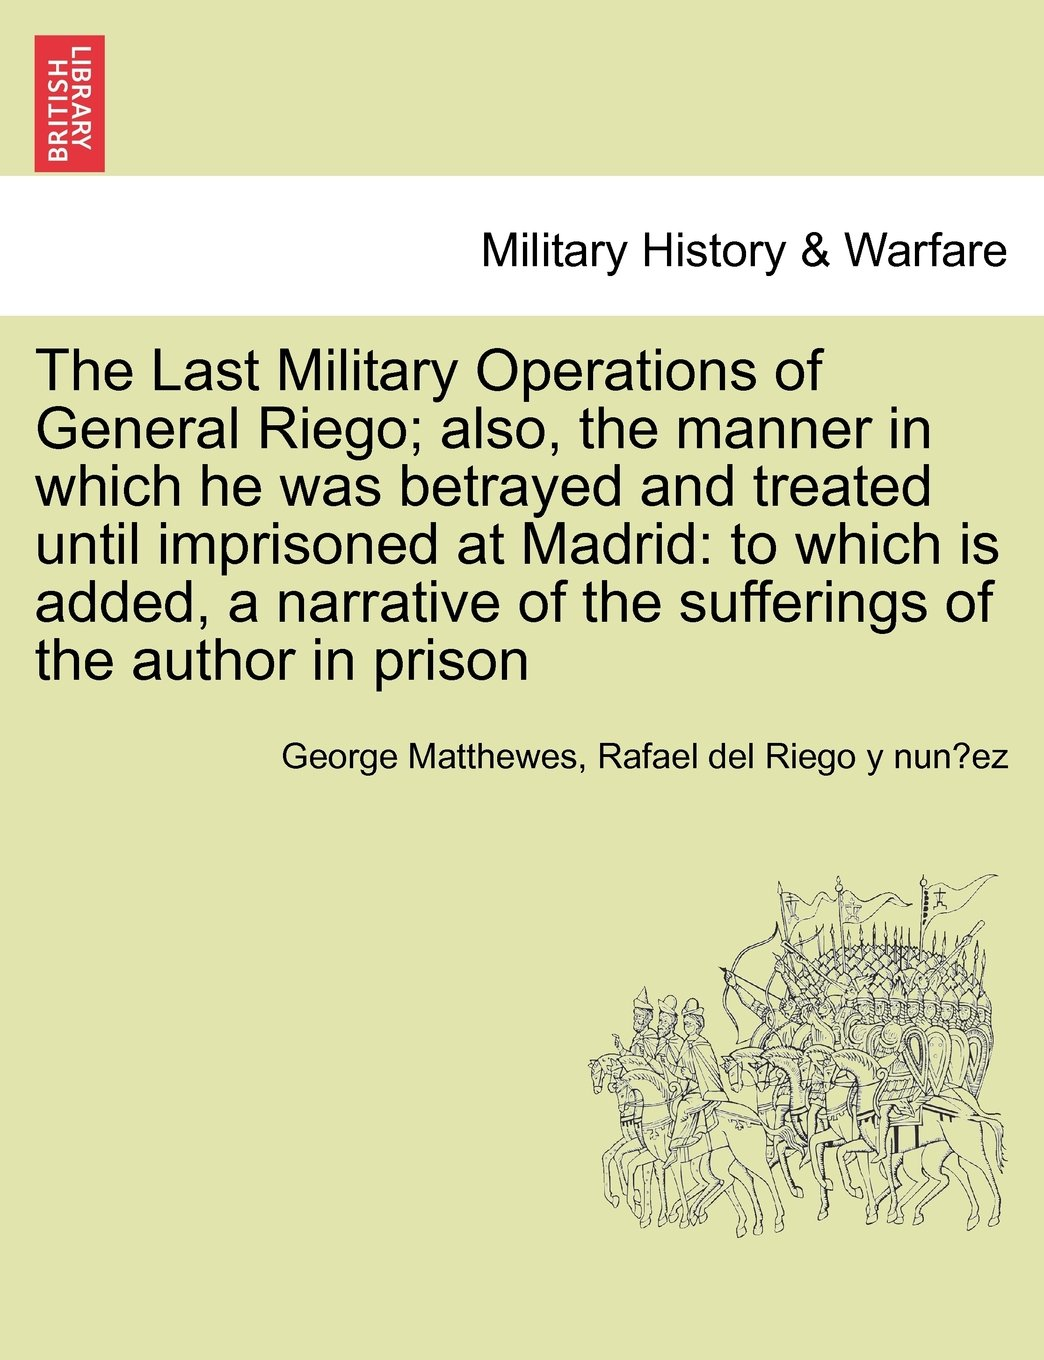 The Last Military Operations of General Riego; also, the manner in which he was betrayed and treated until imprisoned at Madrid: to which is added, a ... of the sufferings of the author in prison ebook